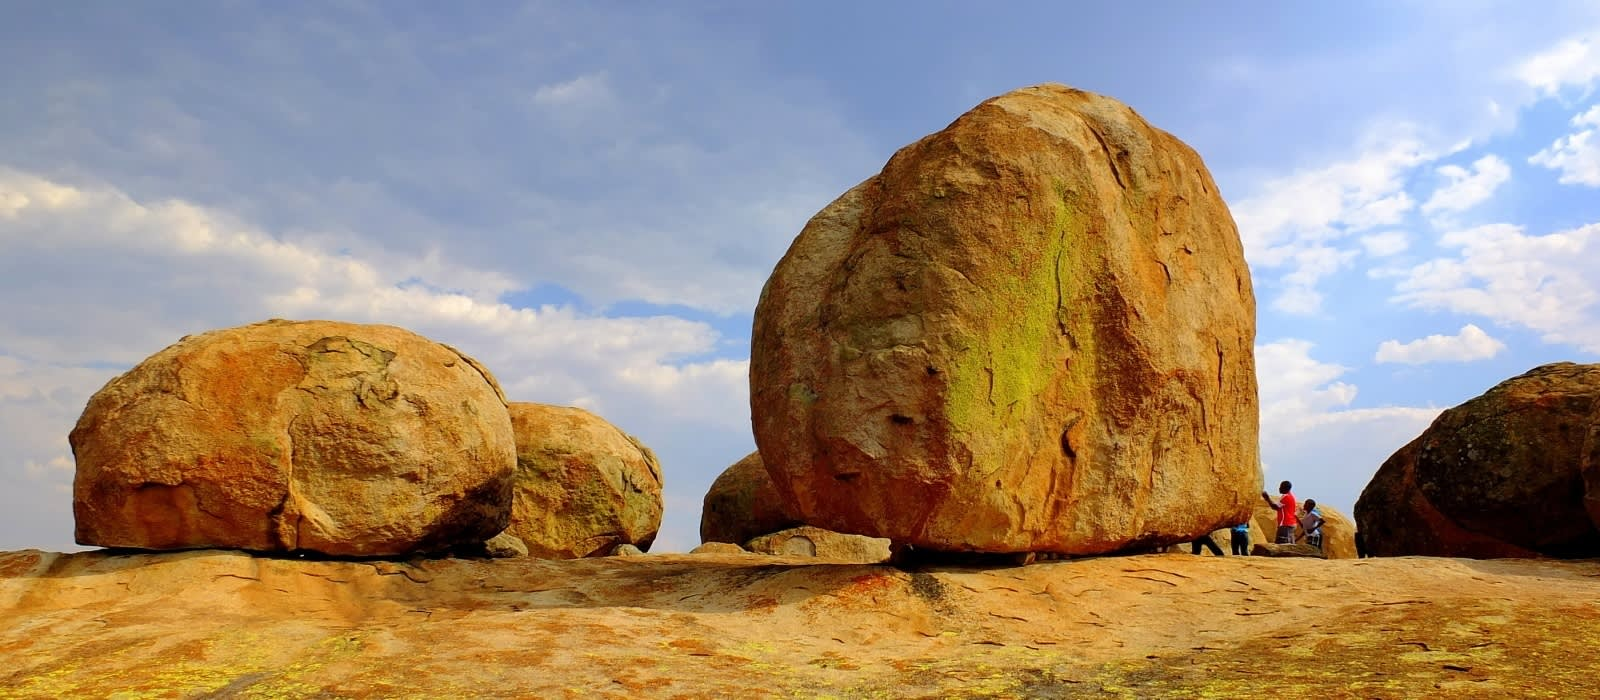 The famous rock formations of Matopos in Zimbabwe, Africa